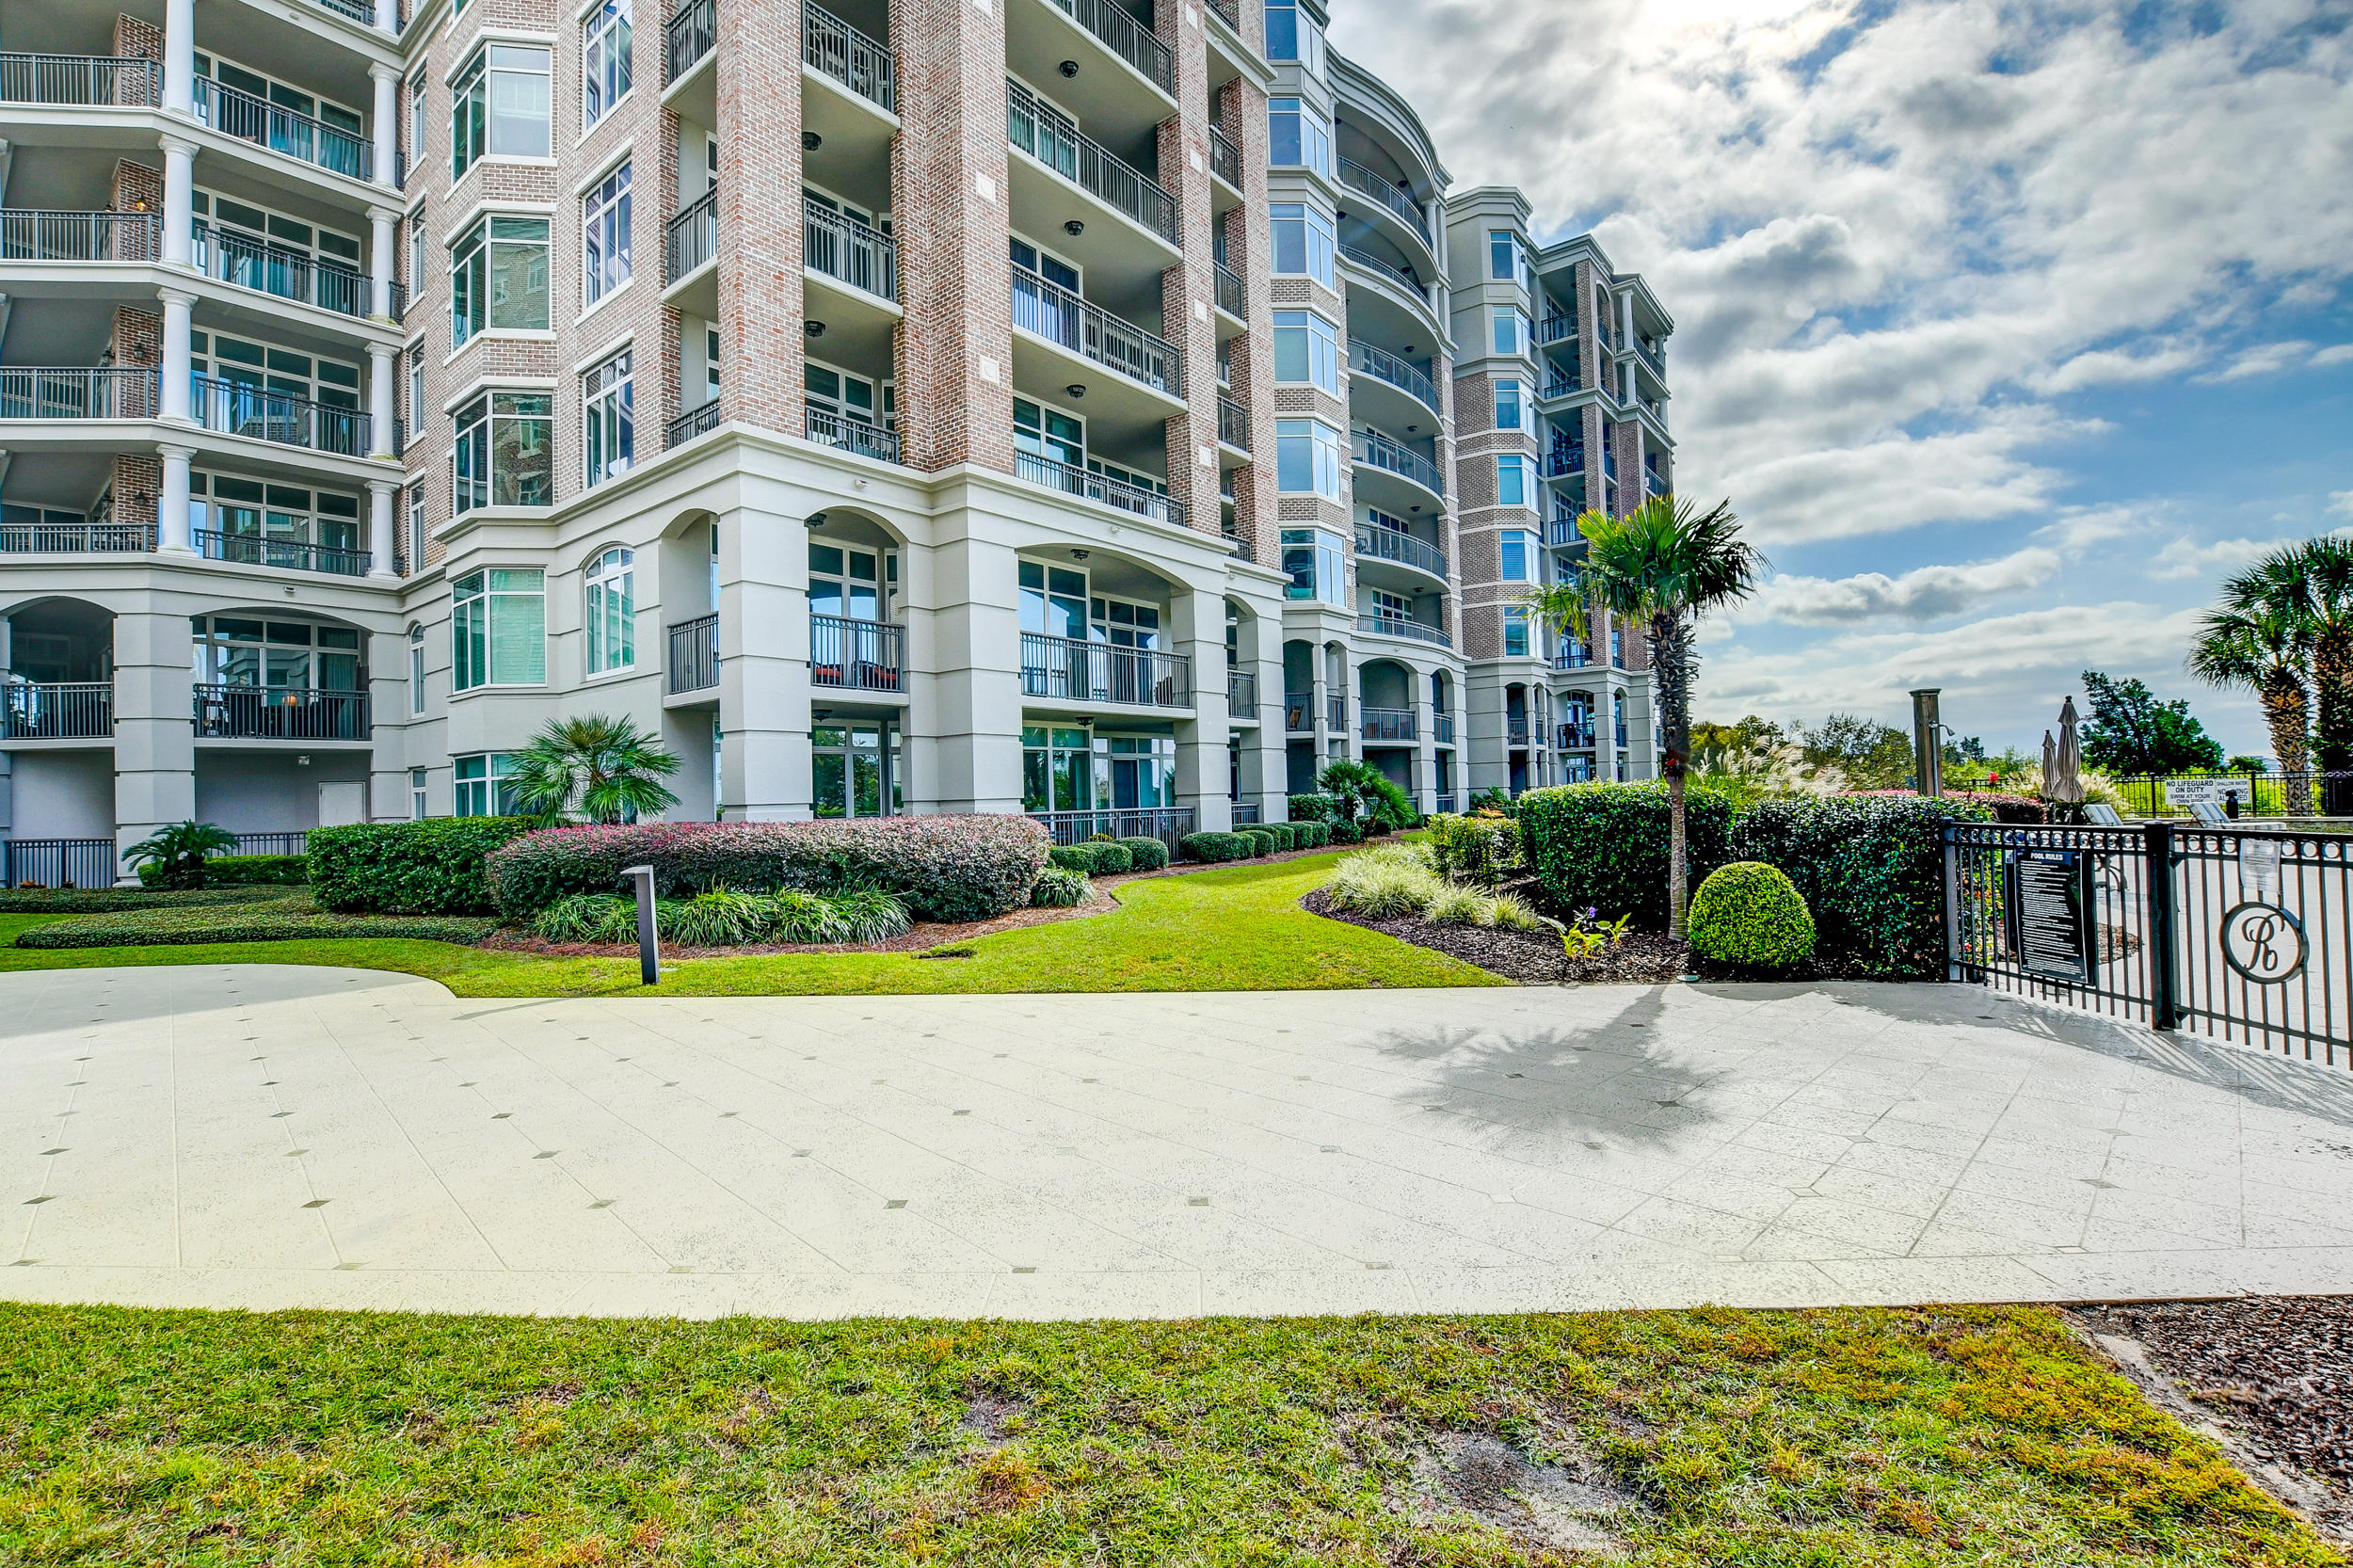 Renaissance On Chas Harbor Homes For Sale - 224 Plaza, Mount Pleasant, SC - 28